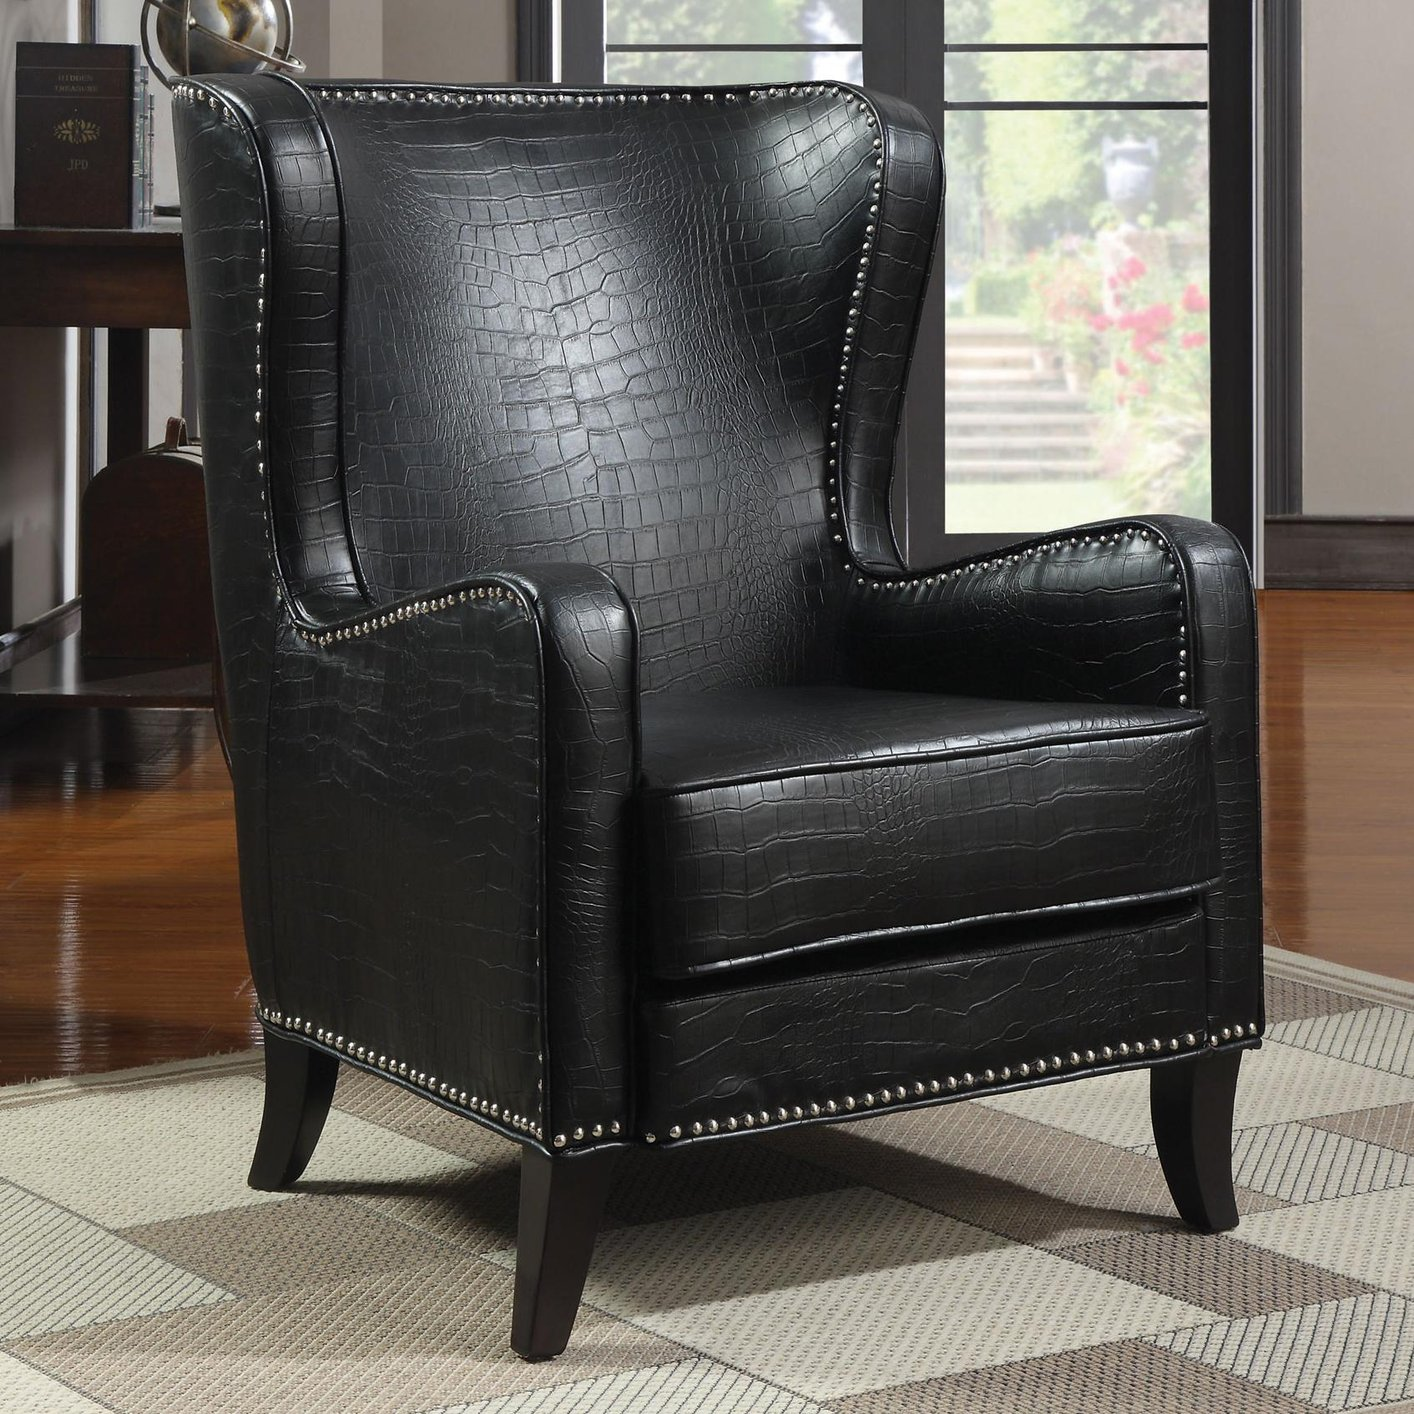 Coaster 900162 Black Leather Accent Chair Steal A Sofa